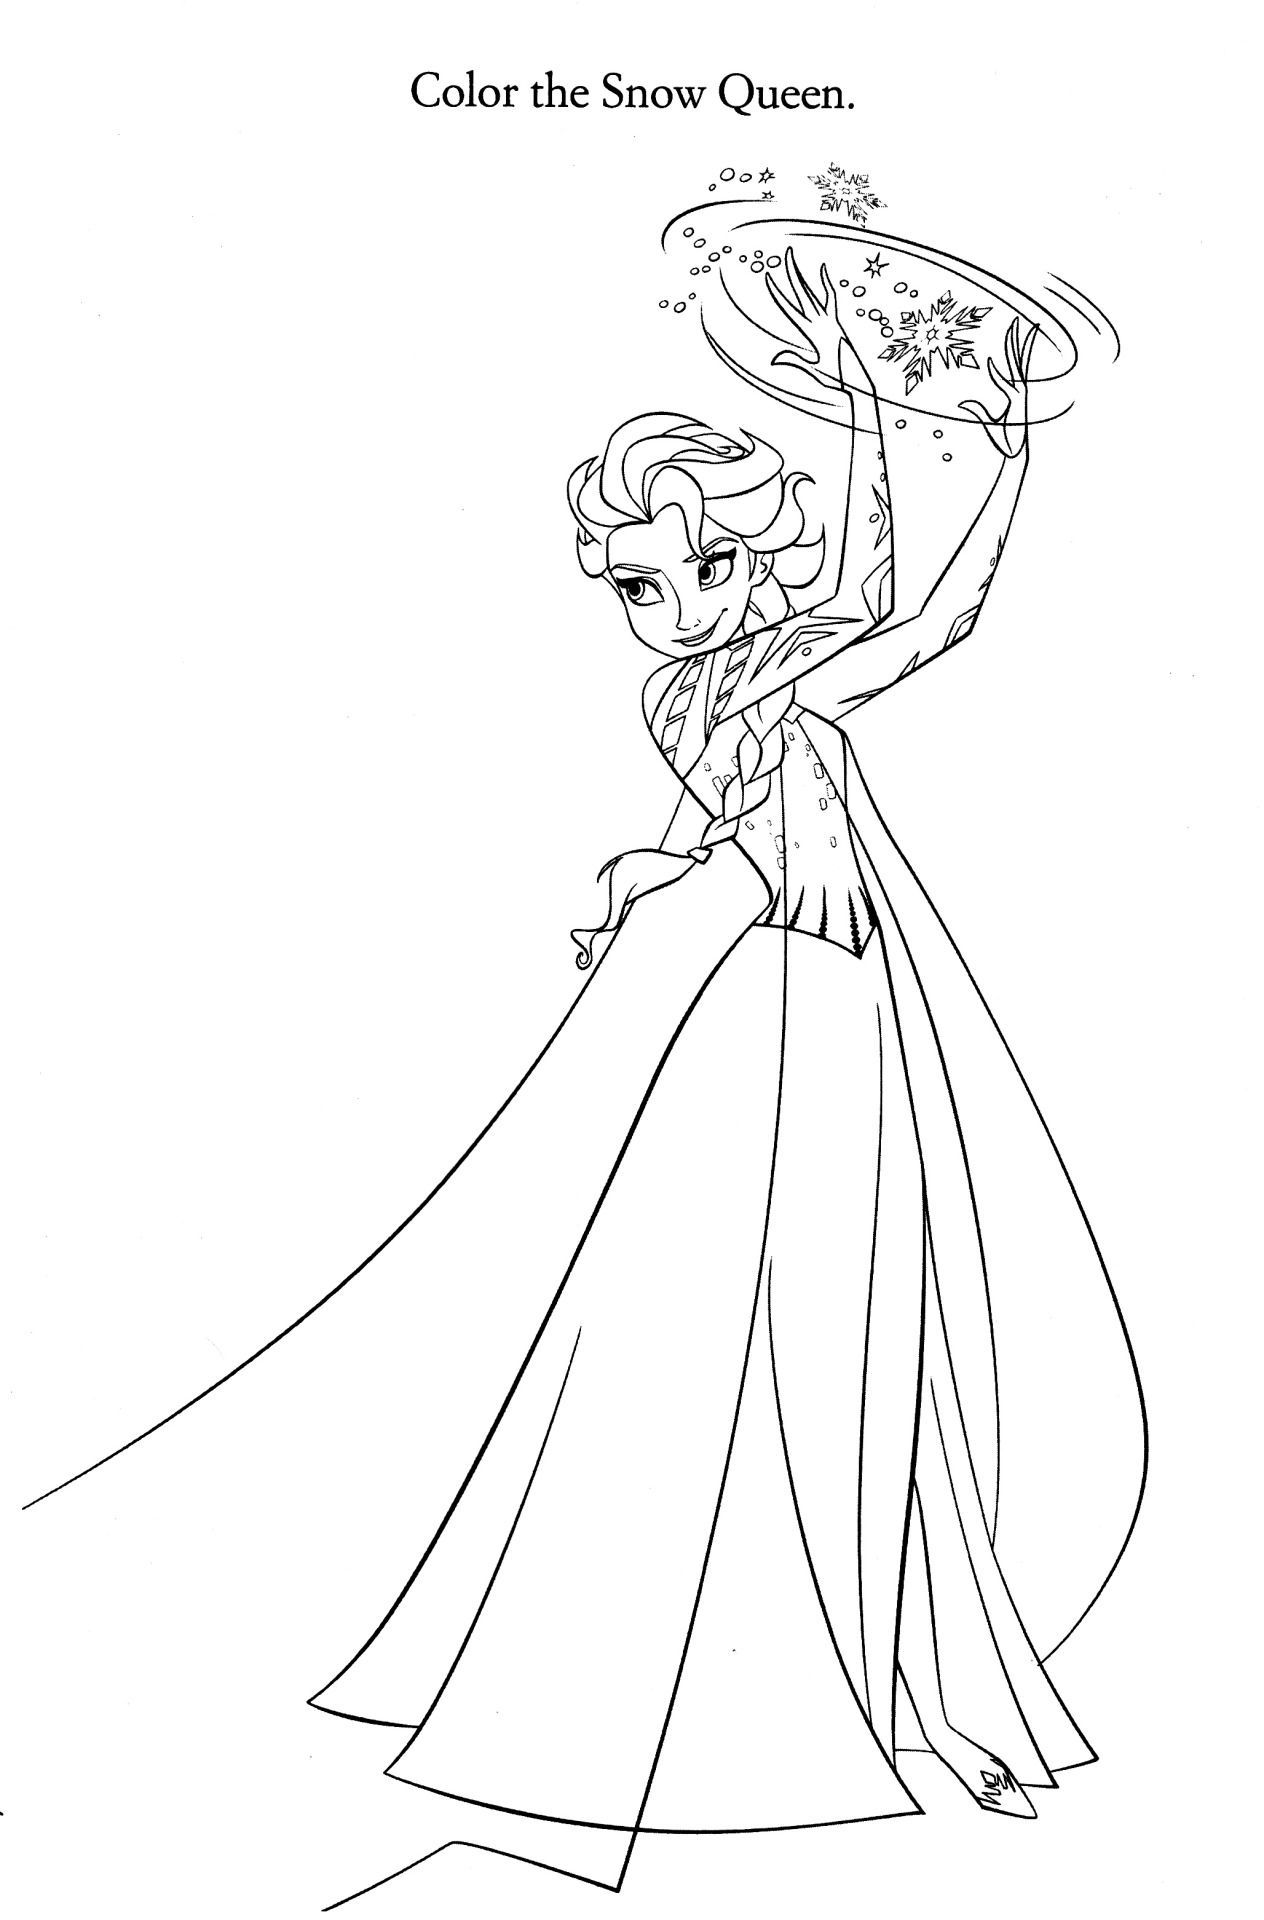 Disney Coloring Pages Frozen Coloring Pages Disney Coloring Pages Disney Princess Coloring Pages